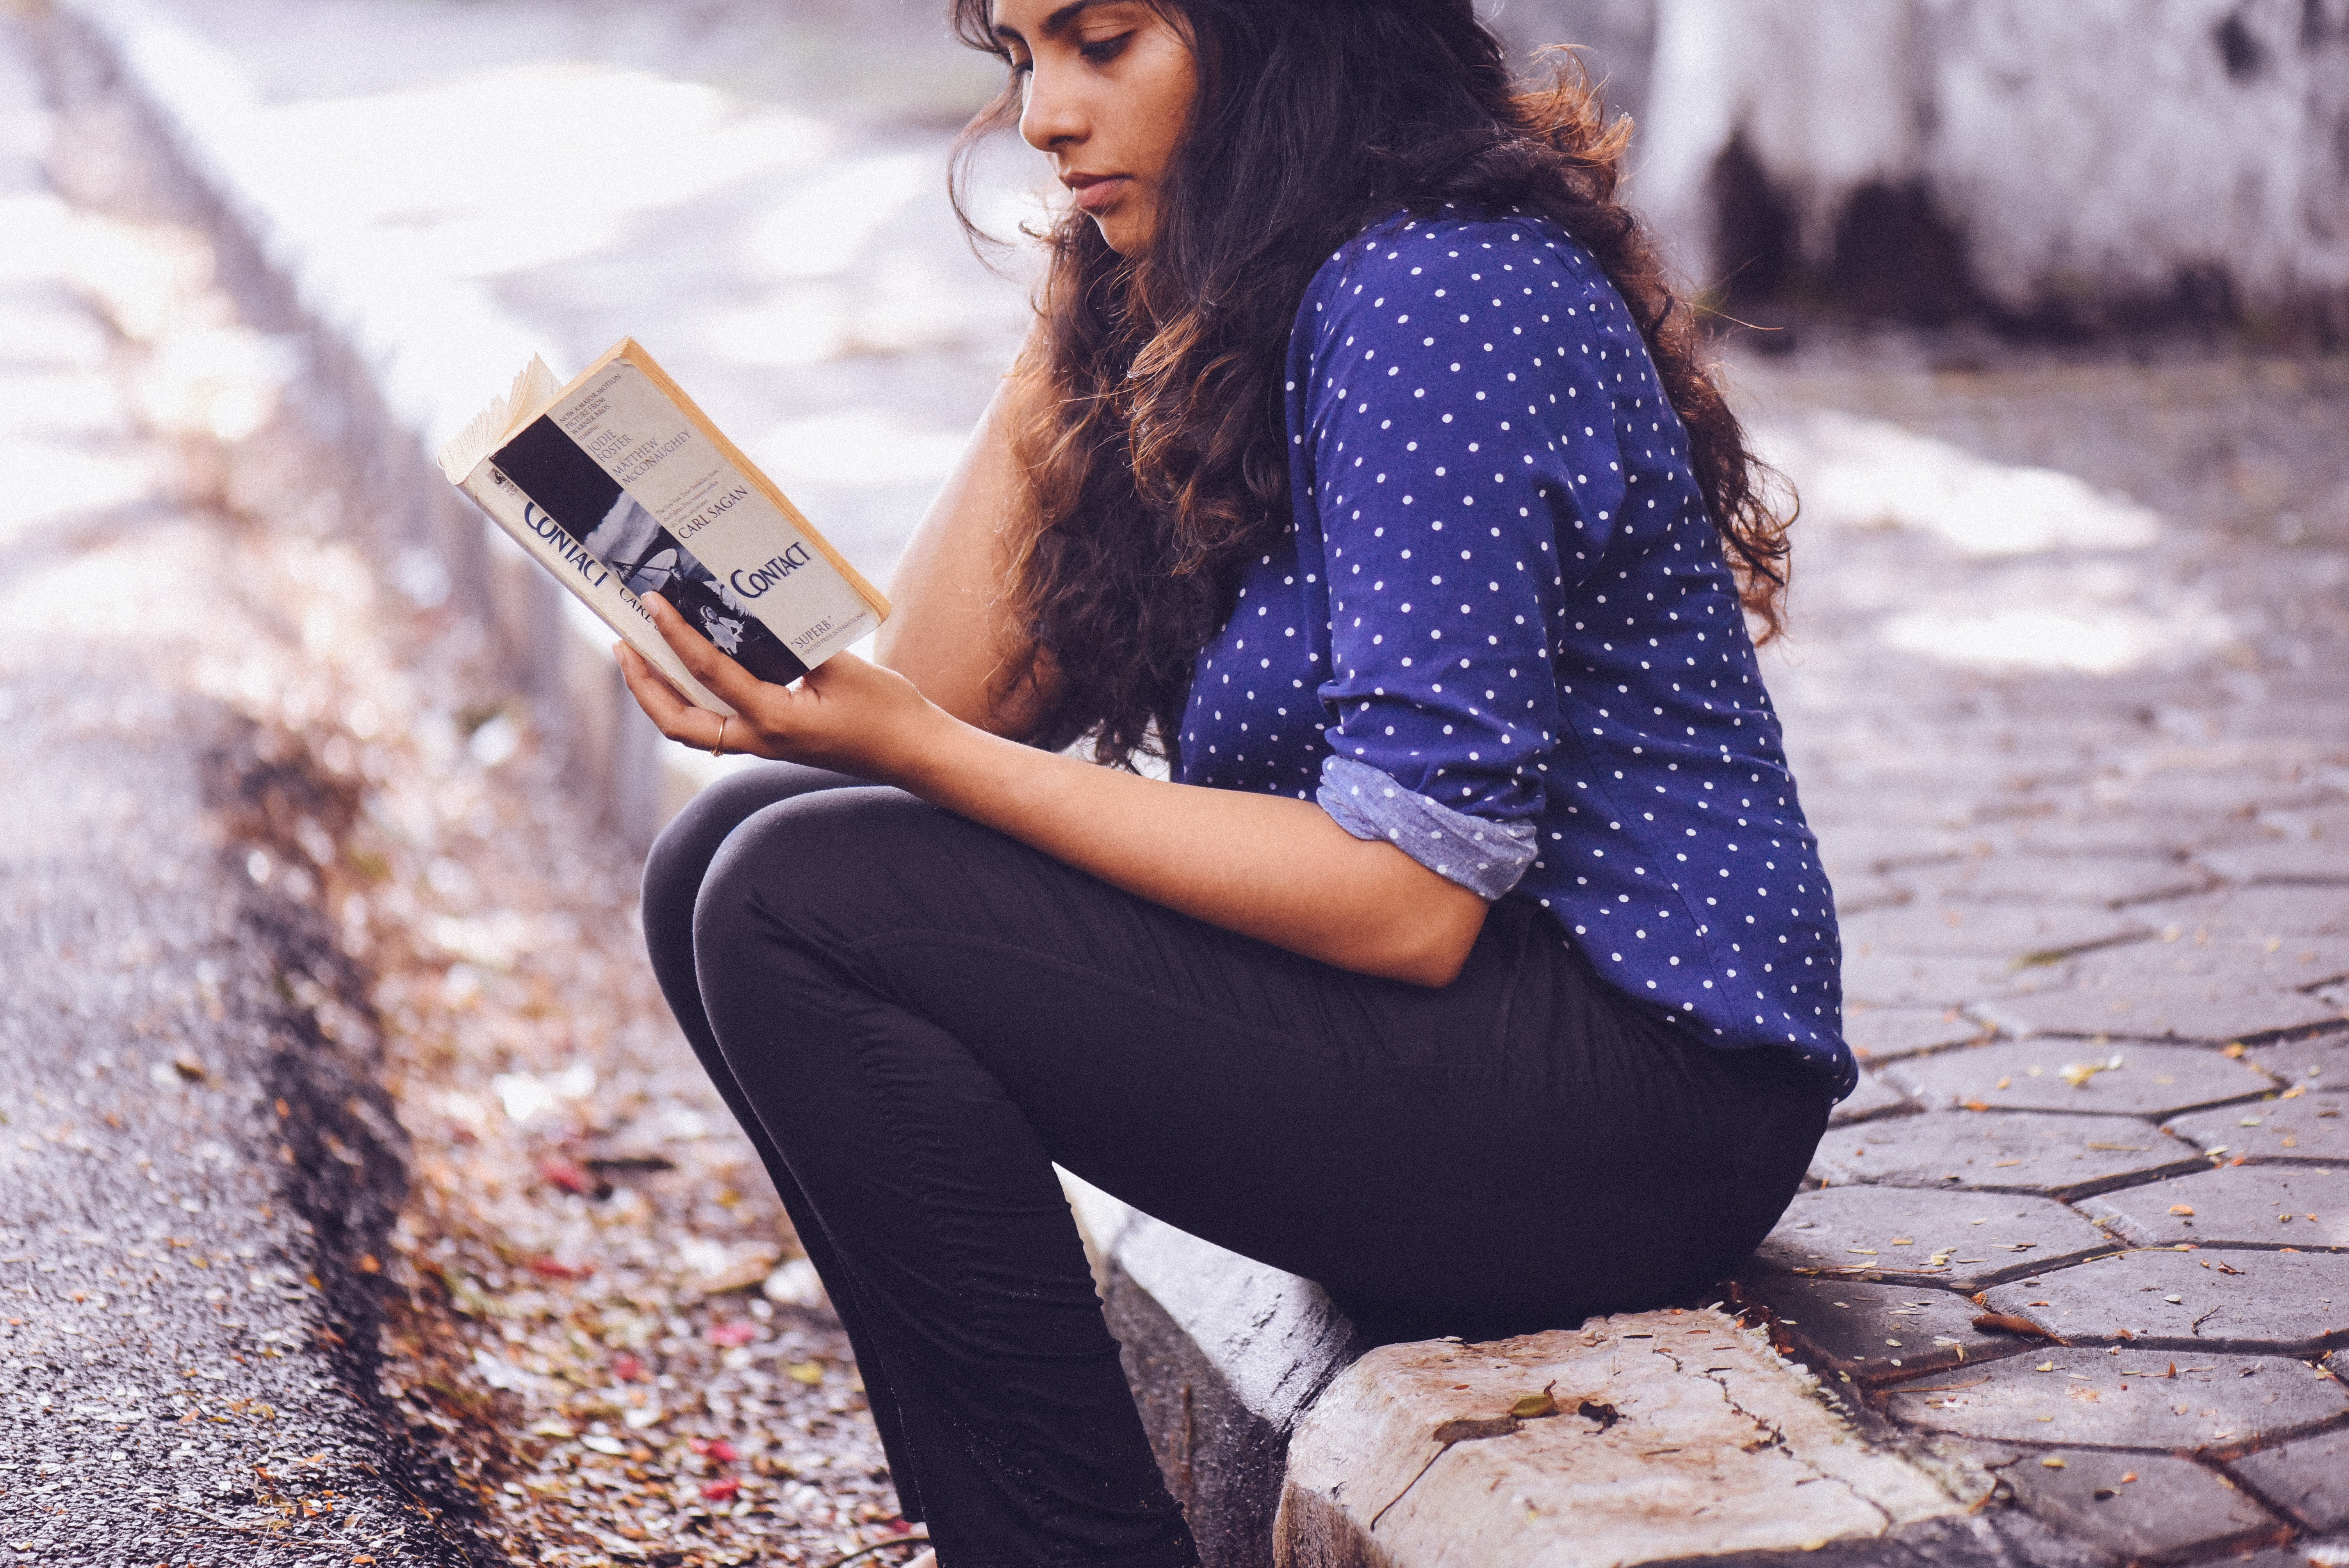 an Indian teenage girl sits on the curb, holding a white and black book in her hands